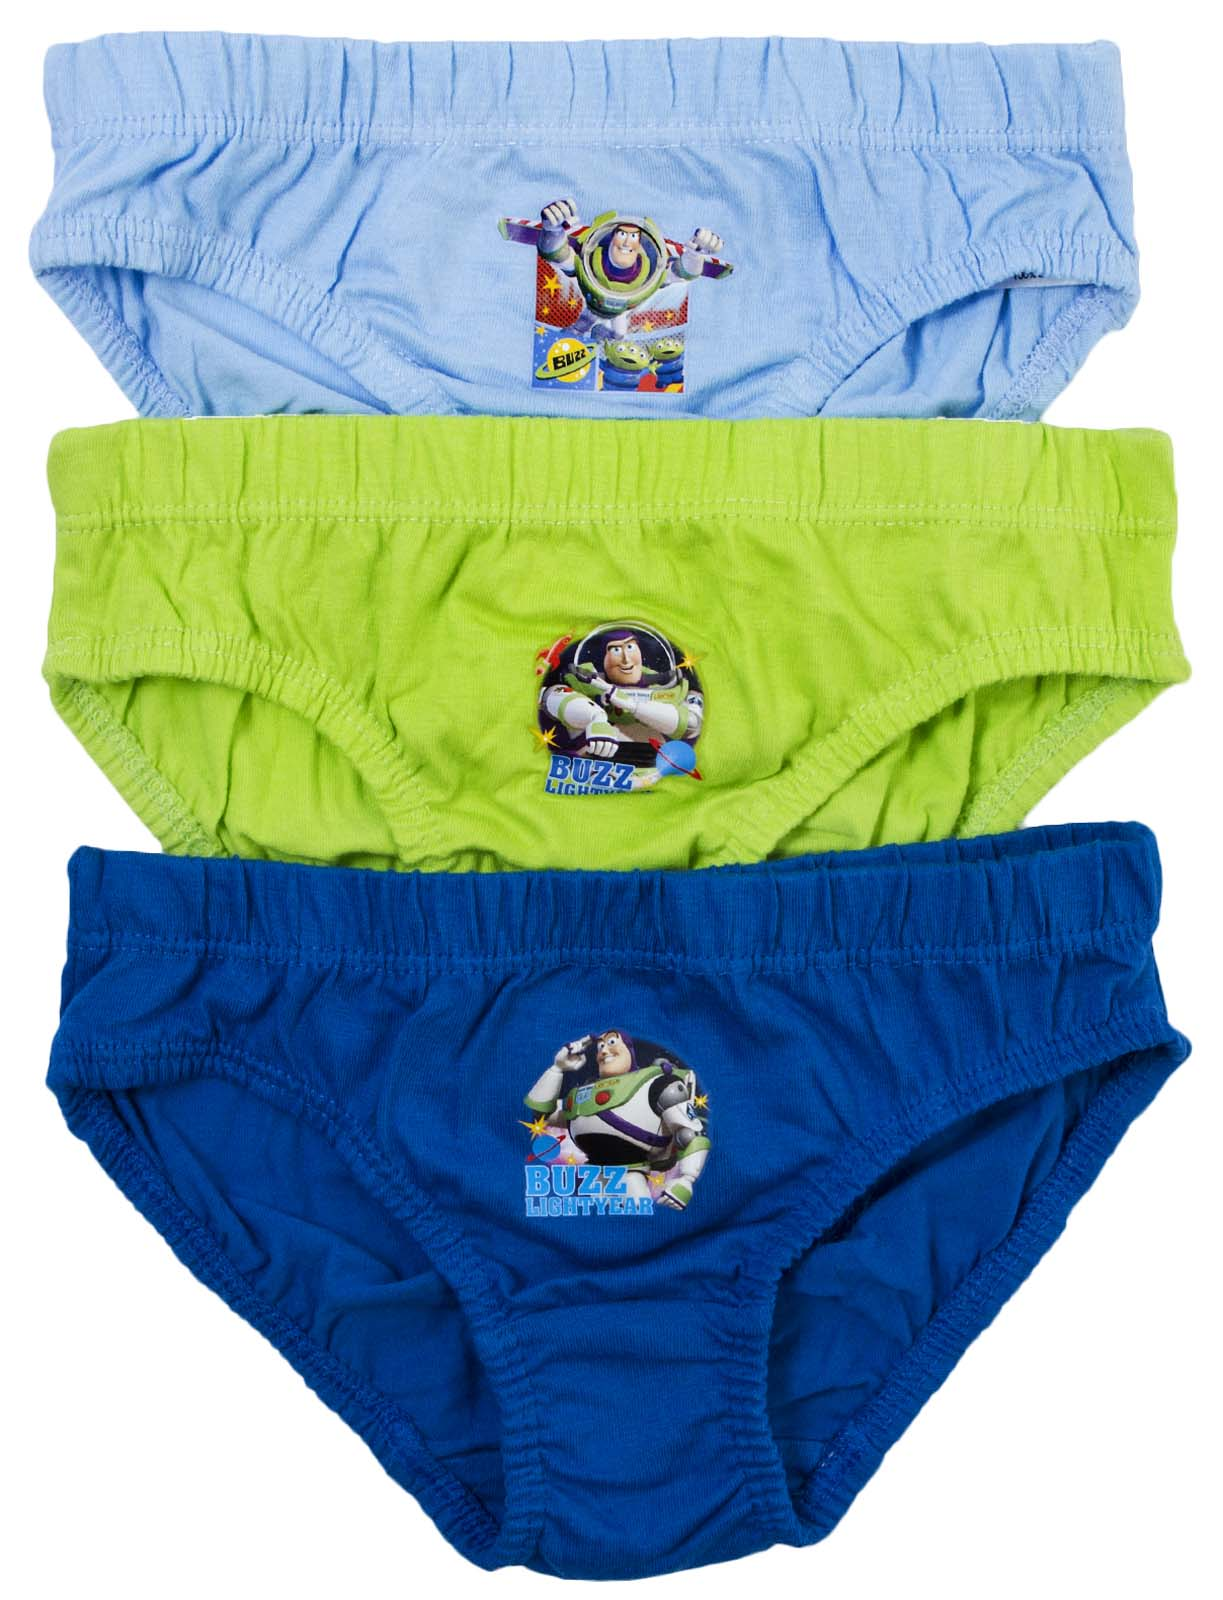 Boys BING BUNNY  100/% Cotton BRIEFS//PANTS x 6 Pairs 18 Months-5 Years